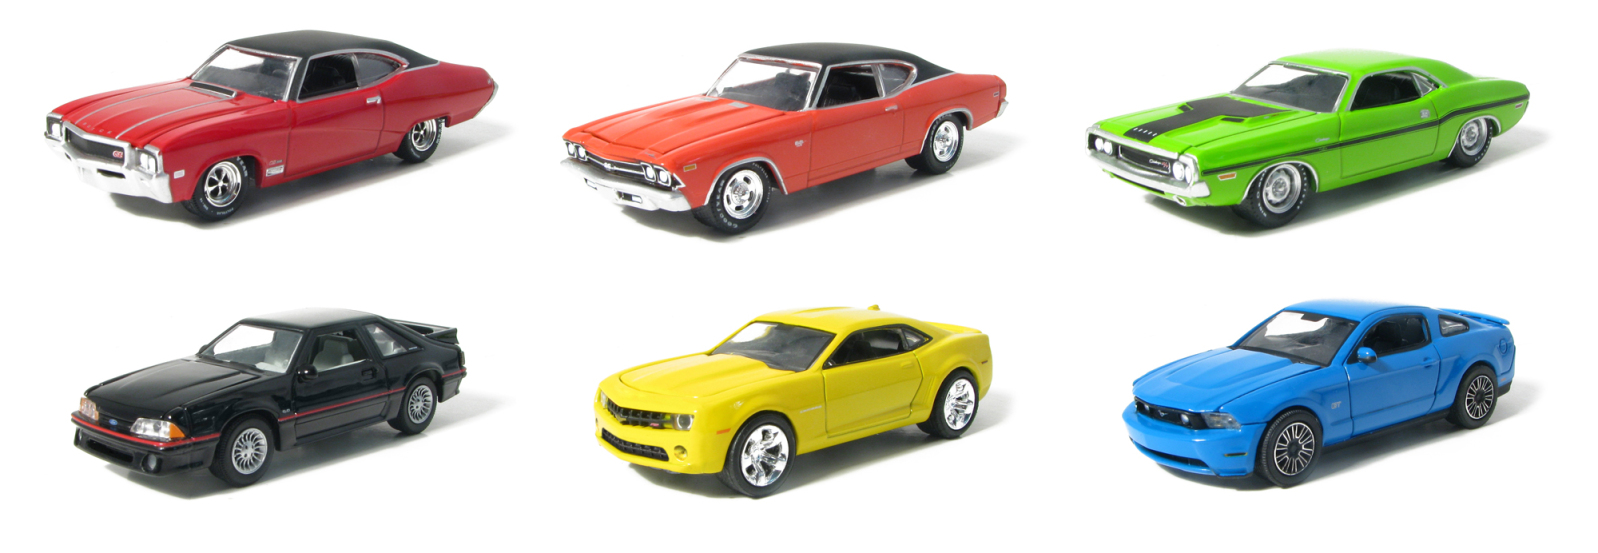 Greenlight Releases New Muscle Car Series Hall S Guide For Hot